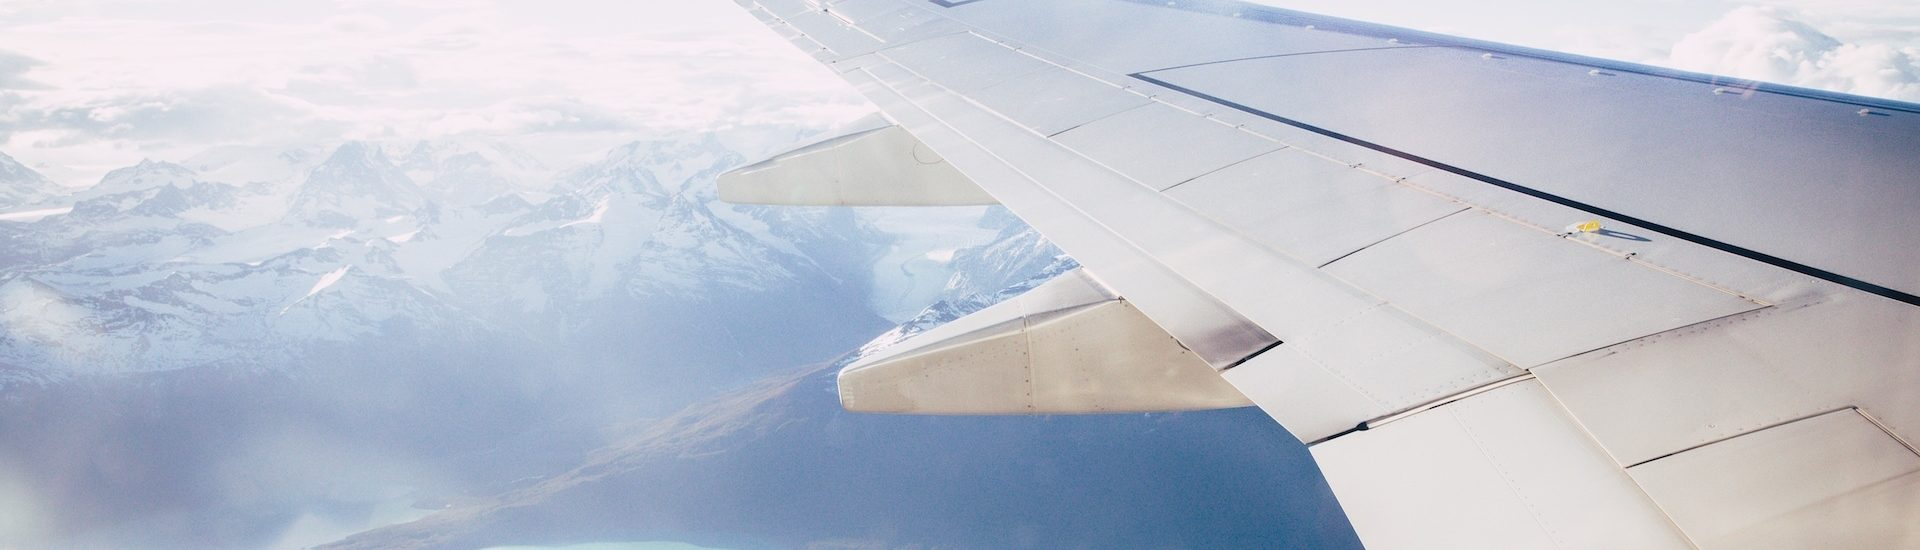 Here's the perfect skincare in-flight routine to salvage your skin at 40,000 ft.